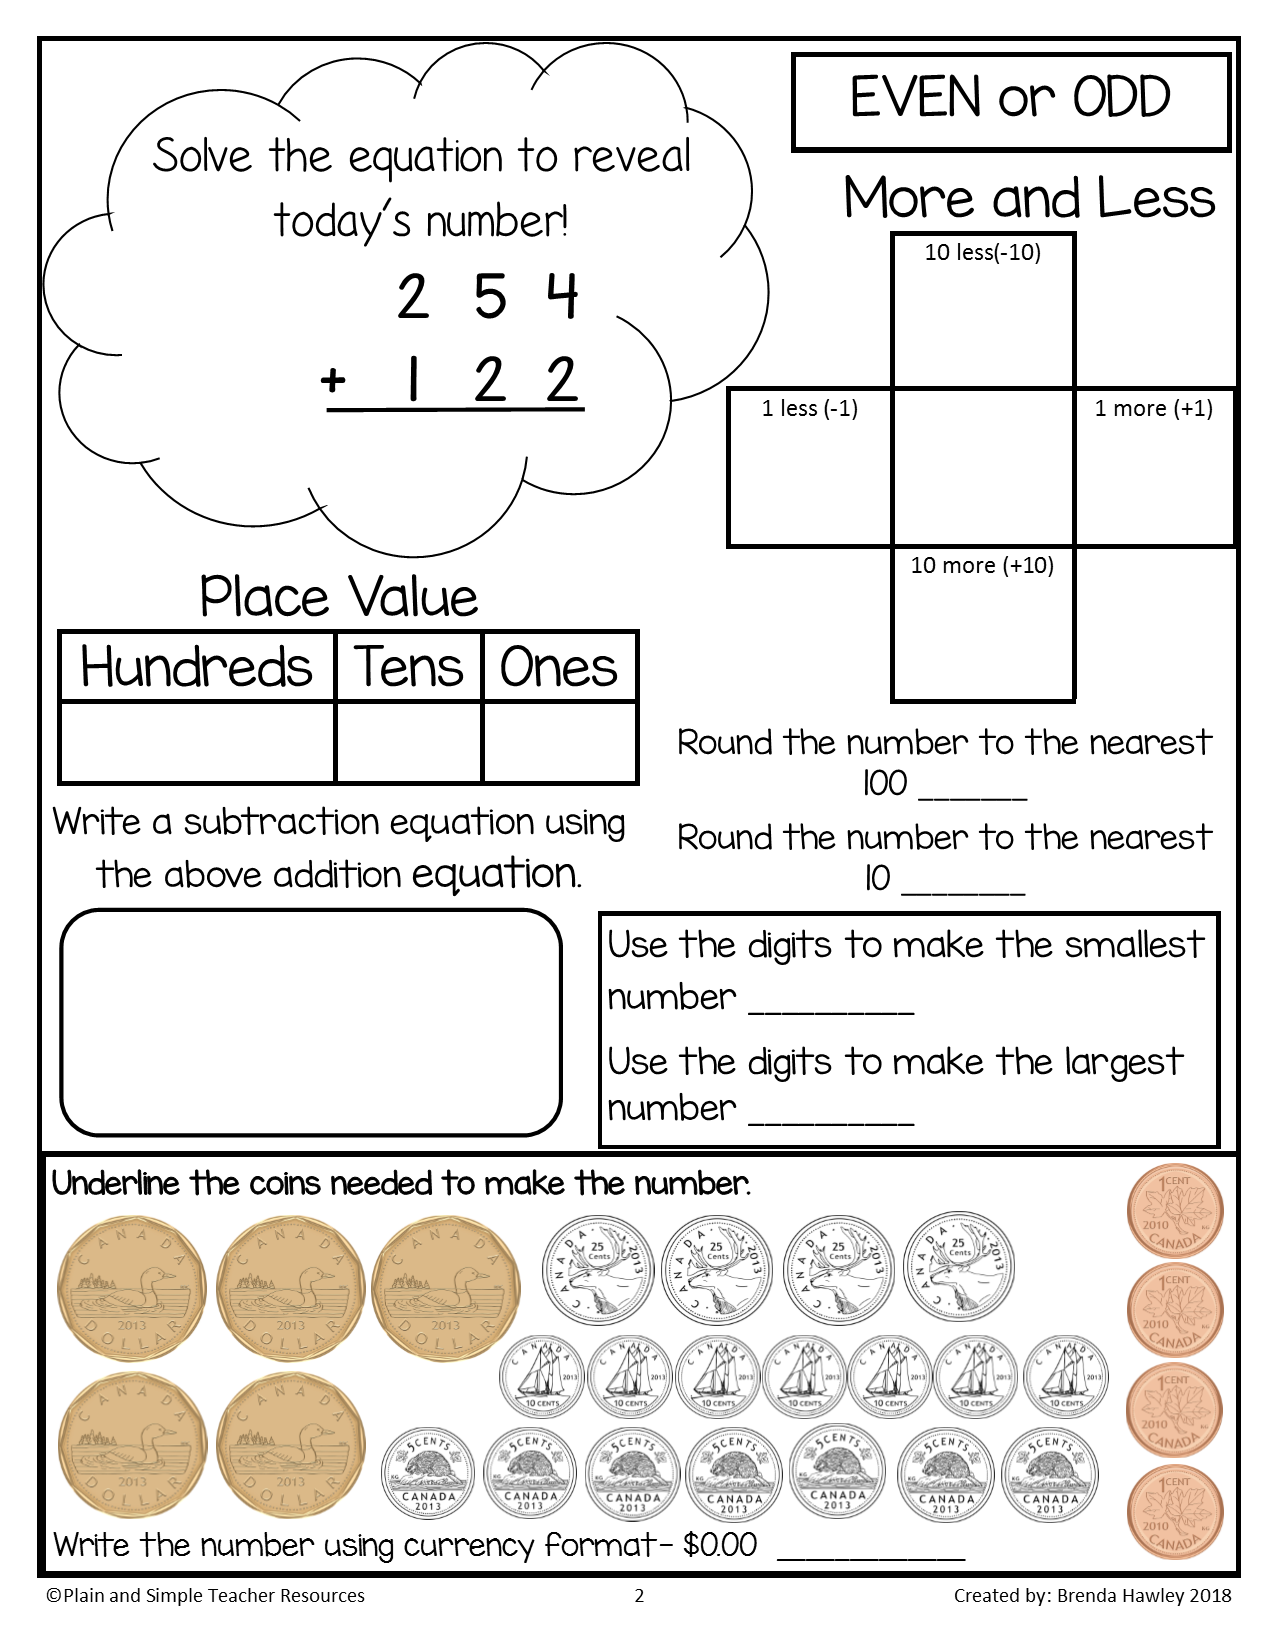 Pin By Brenda Hawley On Math With Images